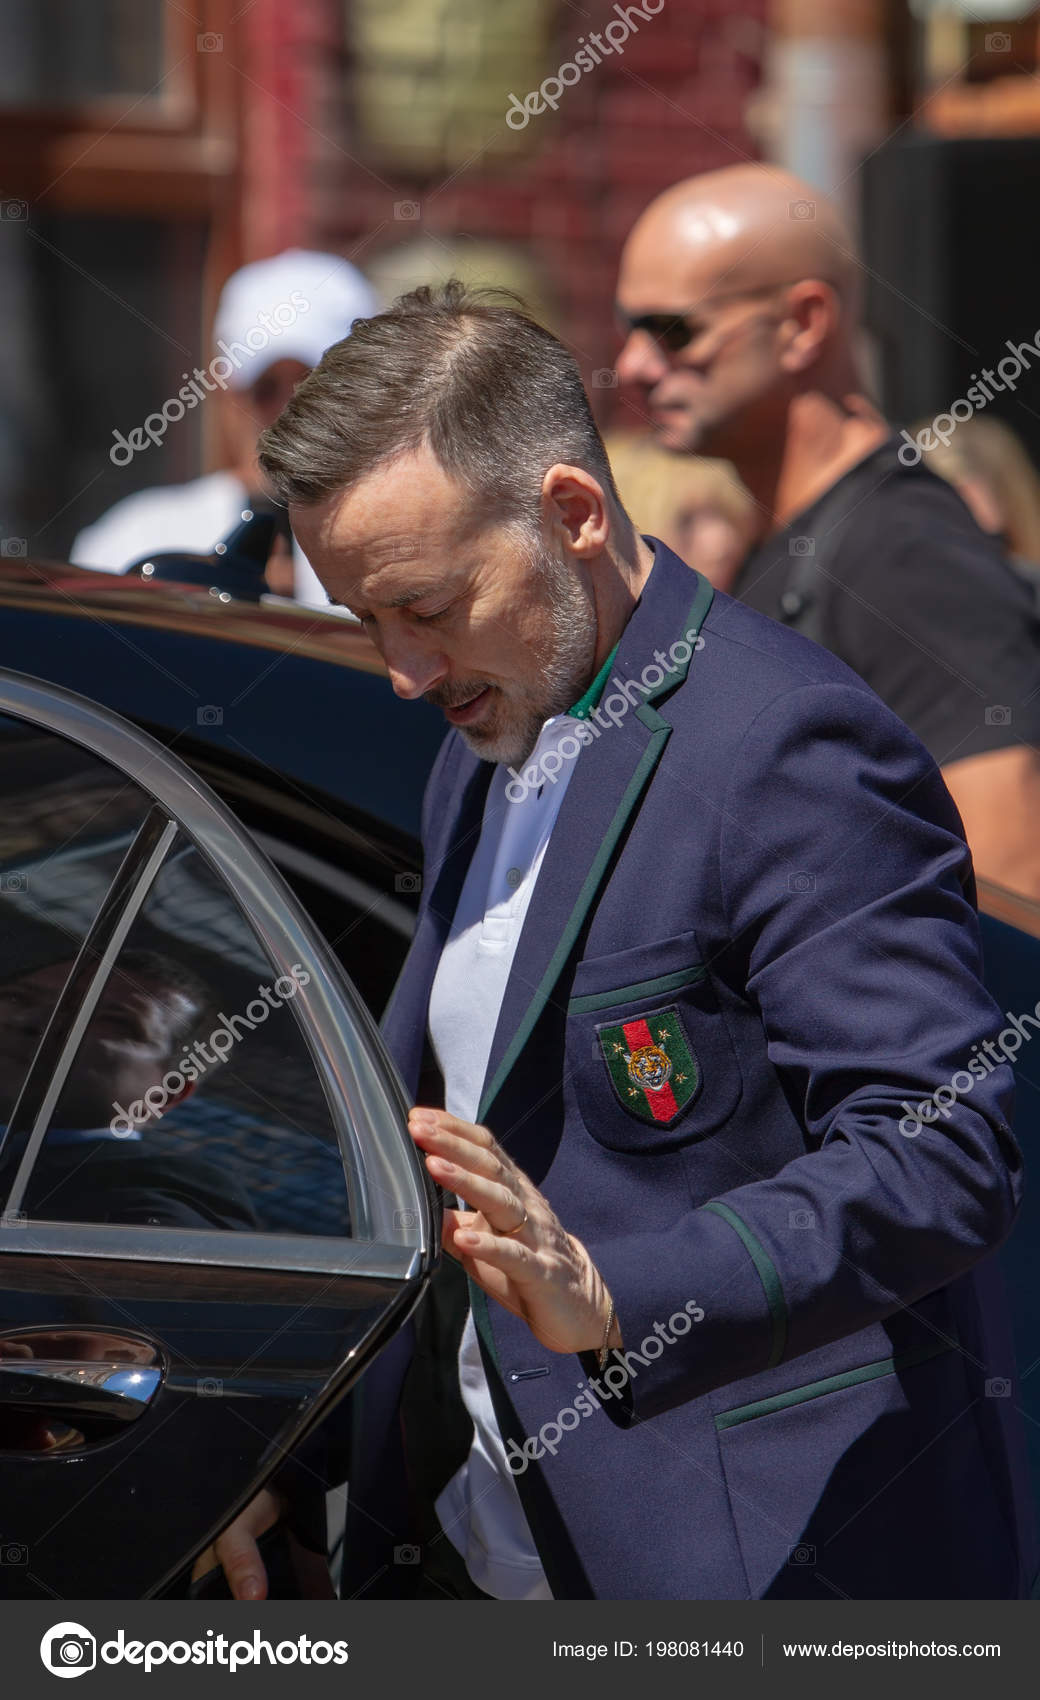 Kiew Ukraine 2018 Mai David Furnish Wird Aus Dem Auto